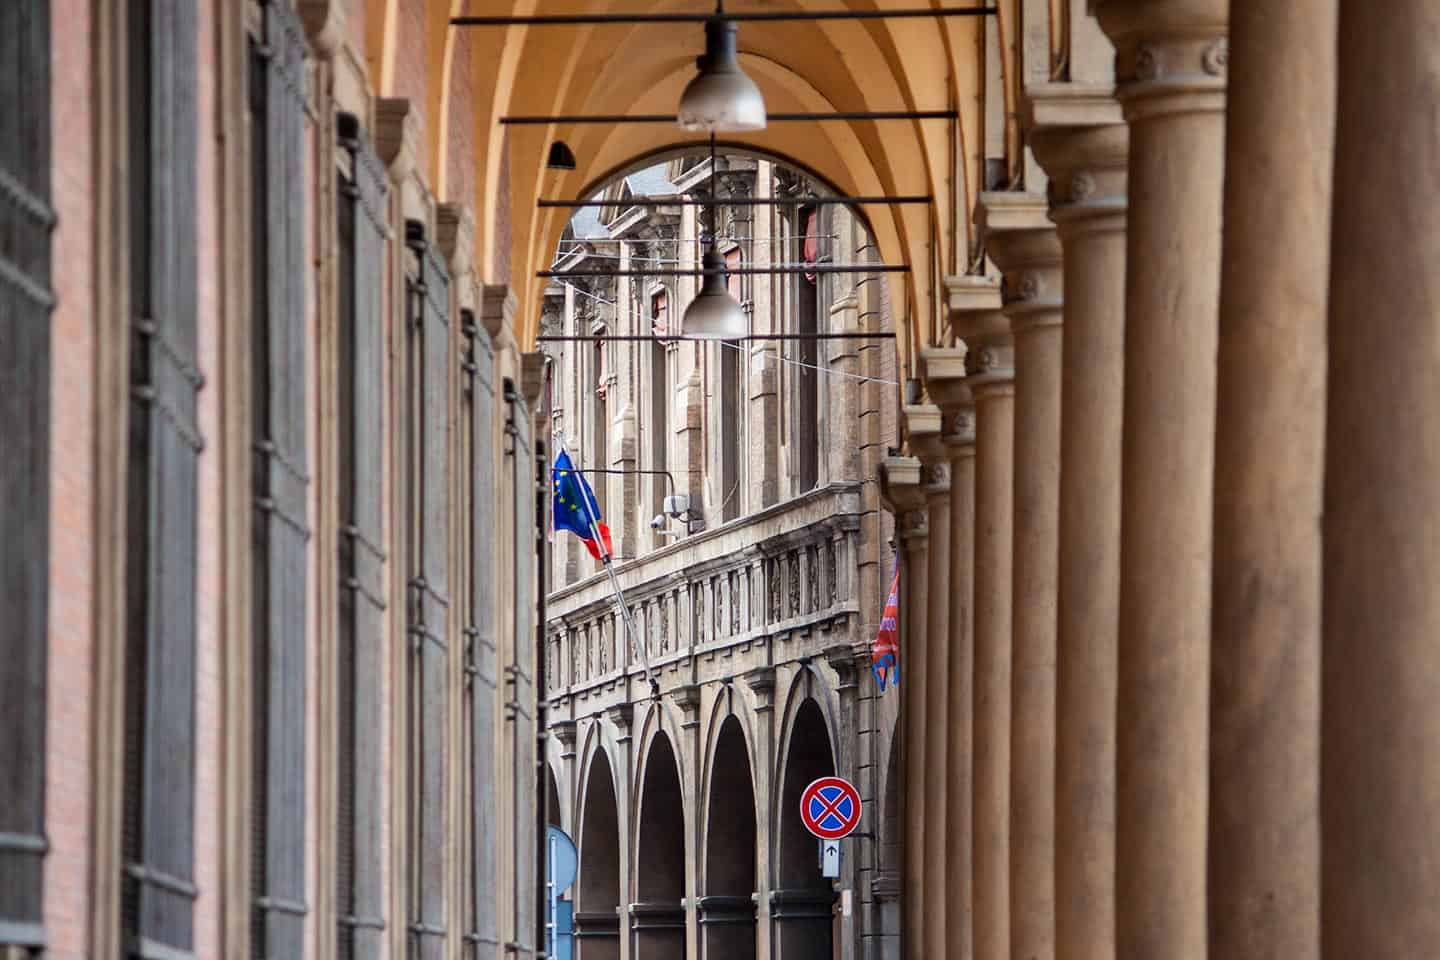 Images of portico or arcade in Bologna Italy